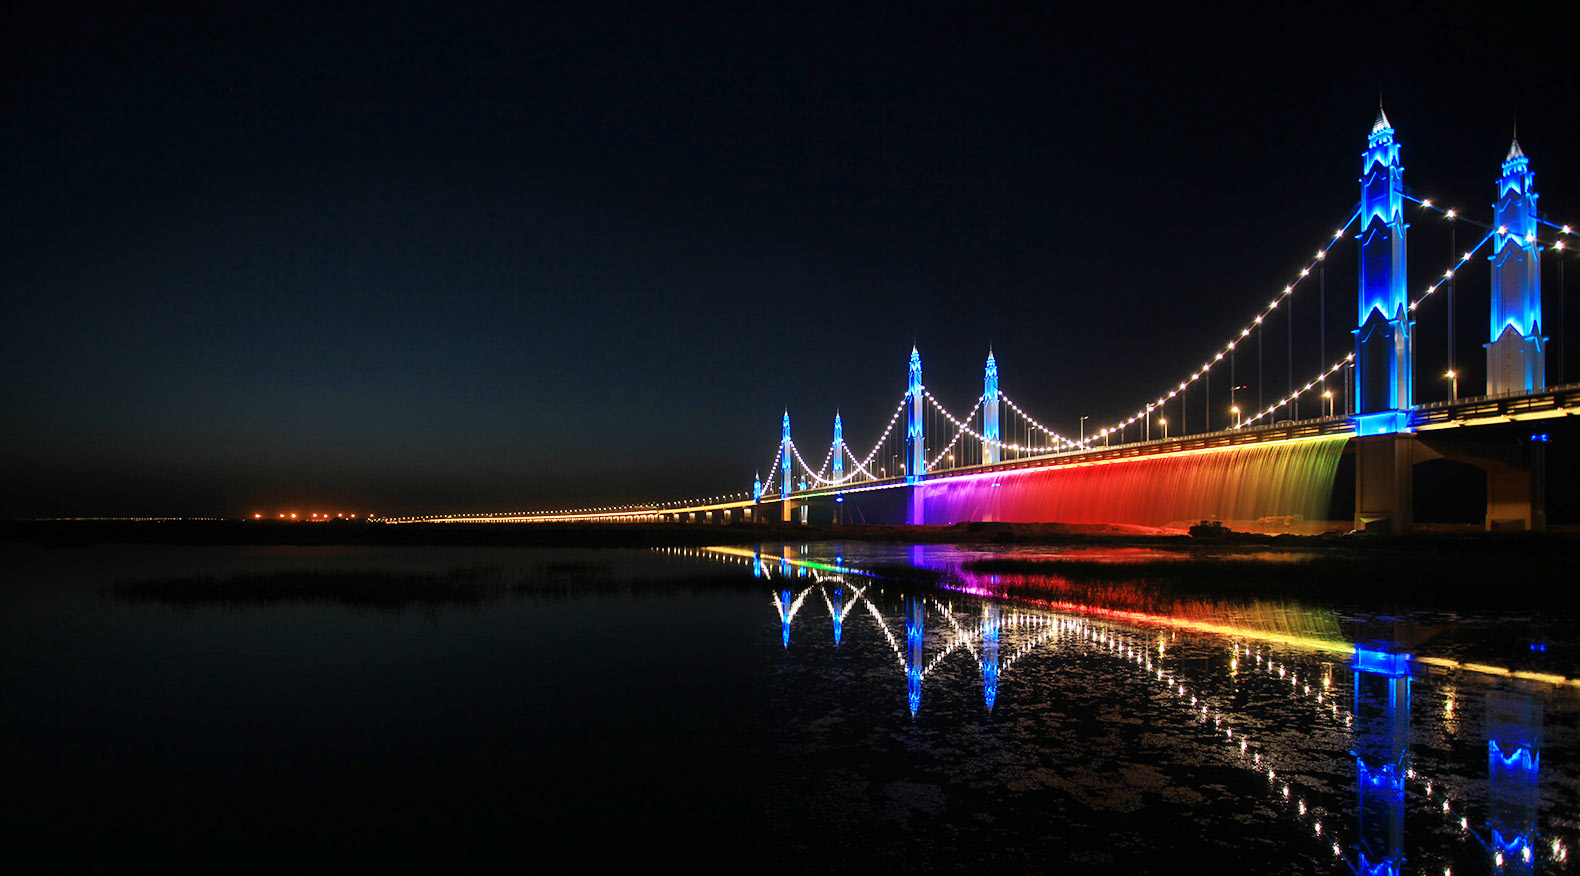 China S Binhe Yellow River Bridge Just Fired Up A Stunning New Lighting System That Bathes The Structure And Below In Prismatic Array Of Colors